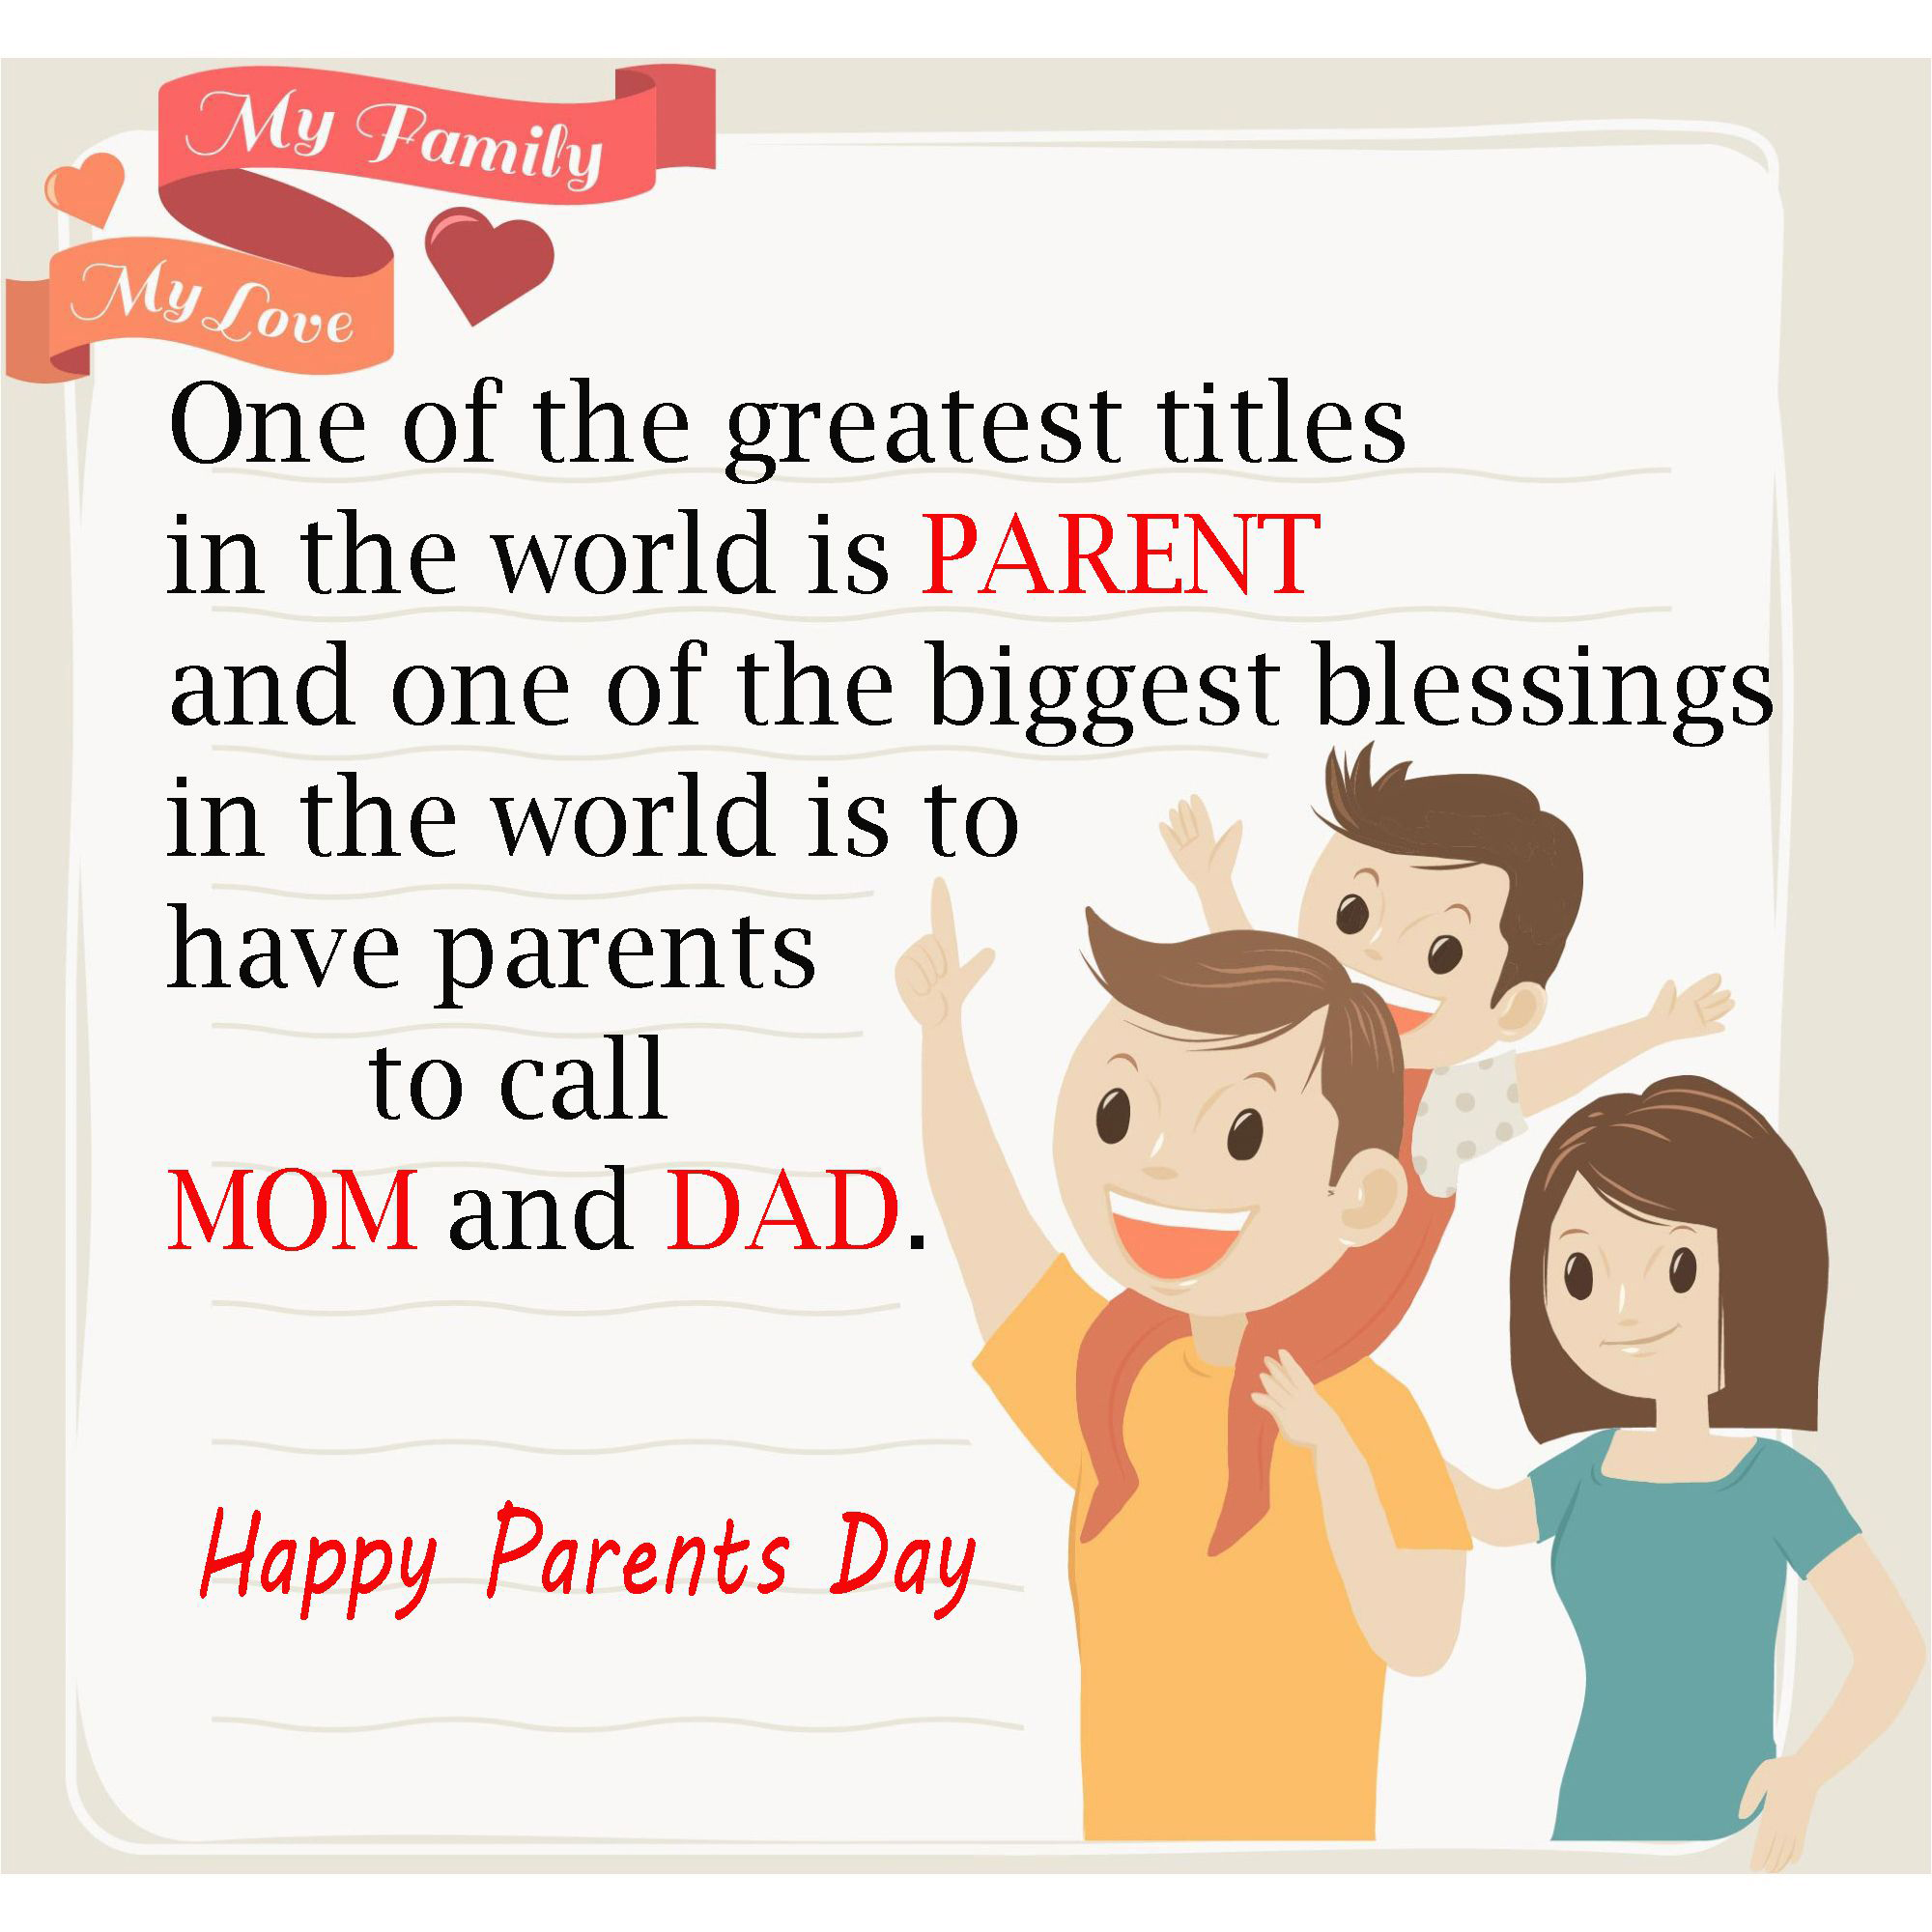 Happy Parents Day Whatsapp Status 2000x2000